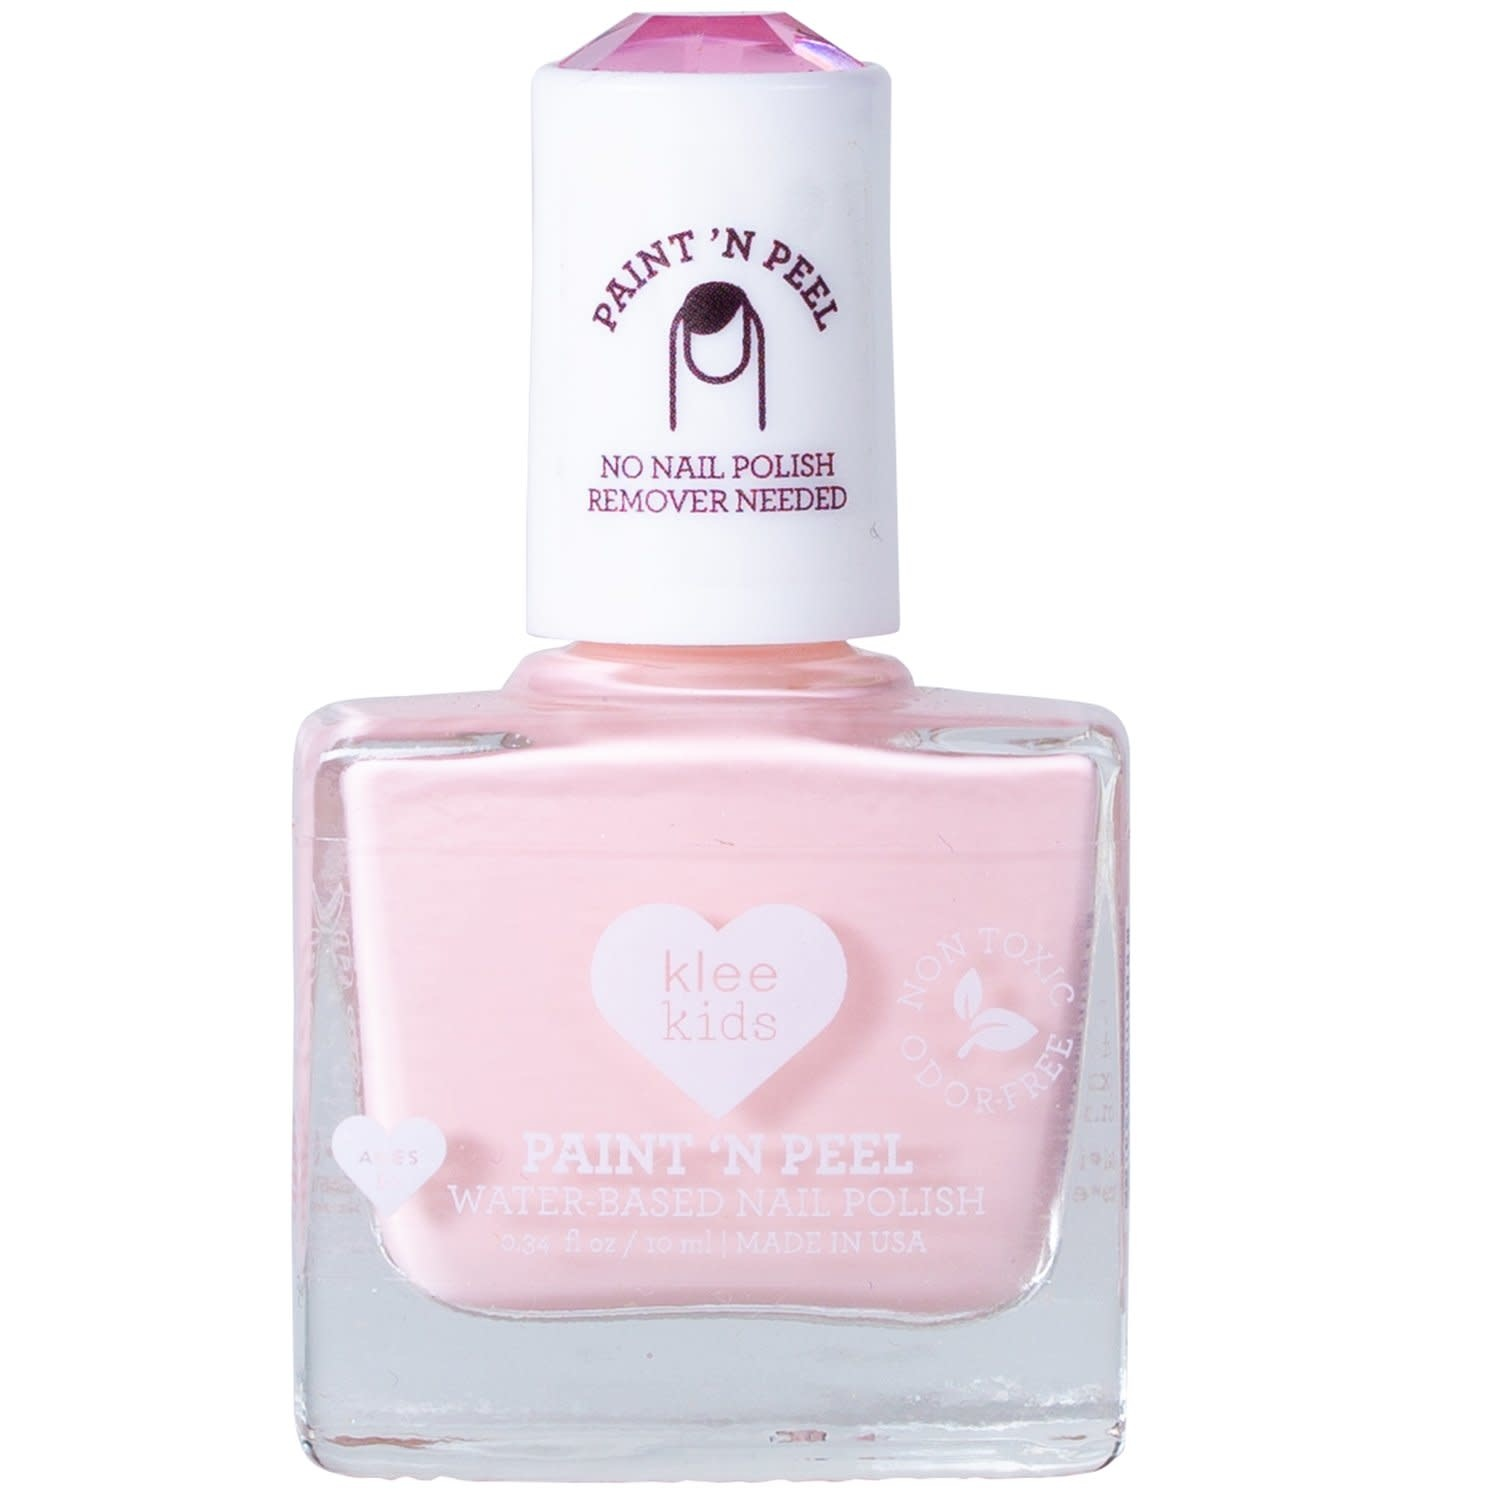 Klee Naturals All Natural Nail Polish